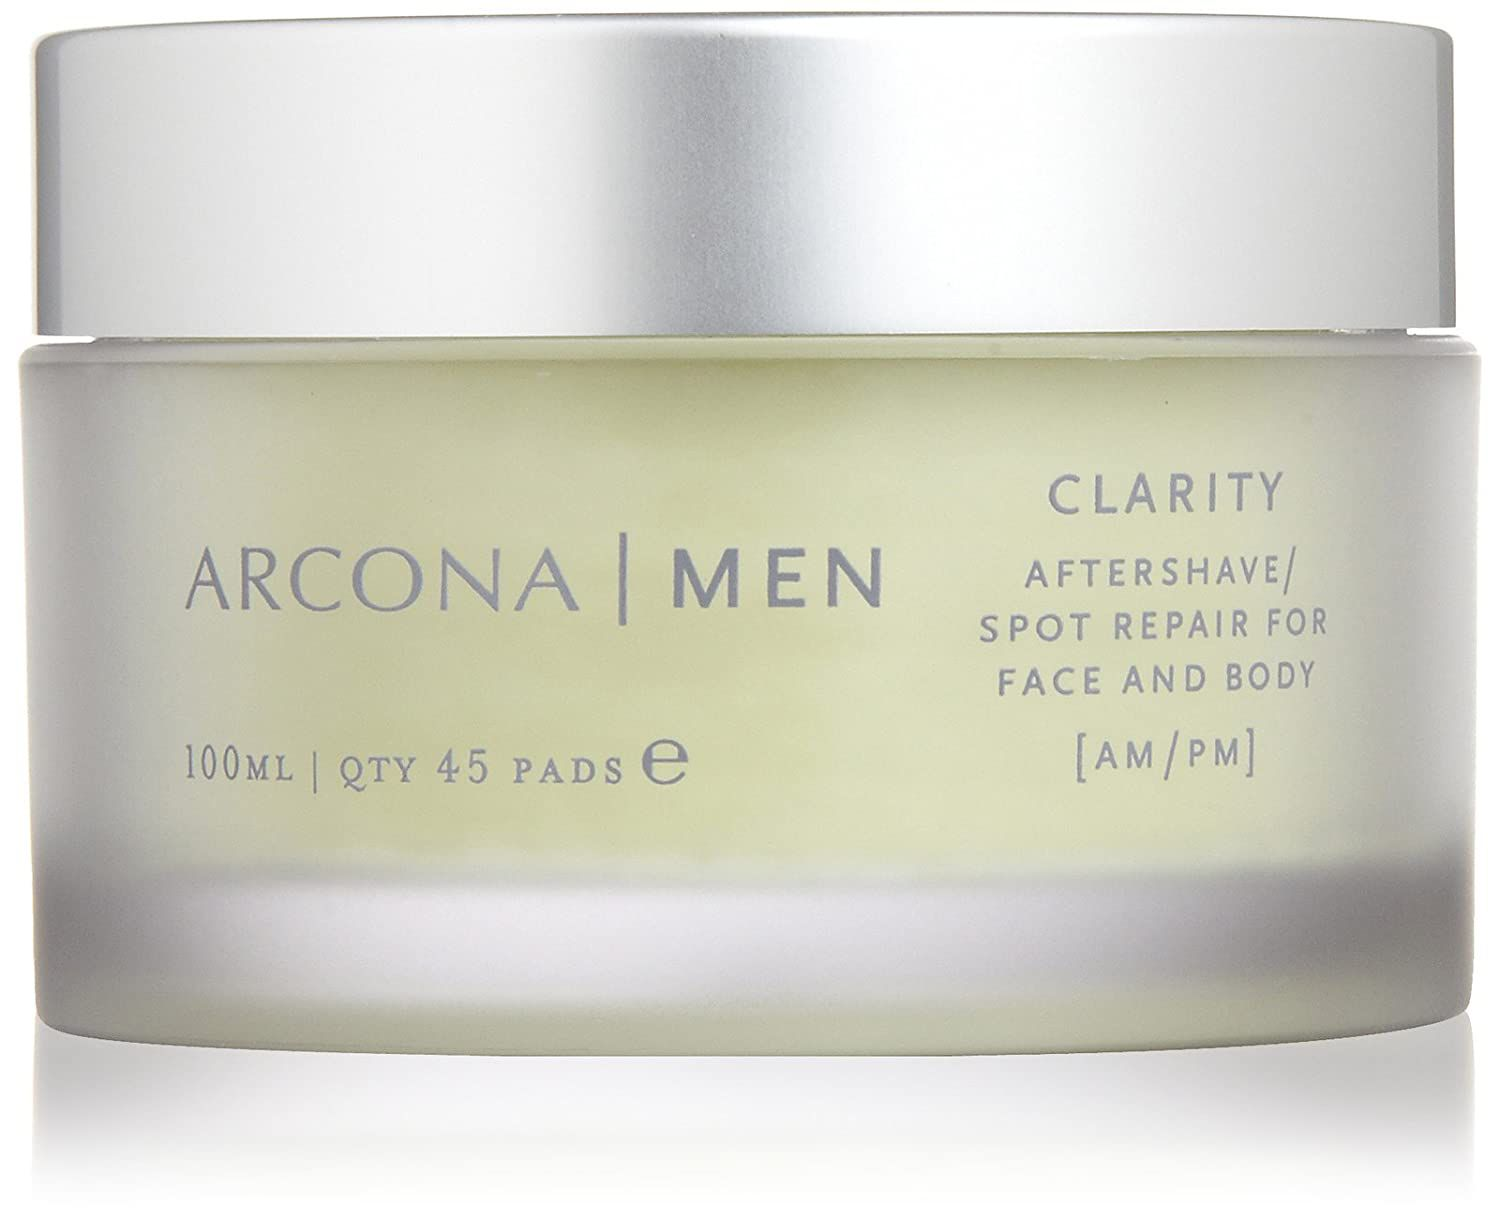 Tub of Arcona men clarity aftershave wipes